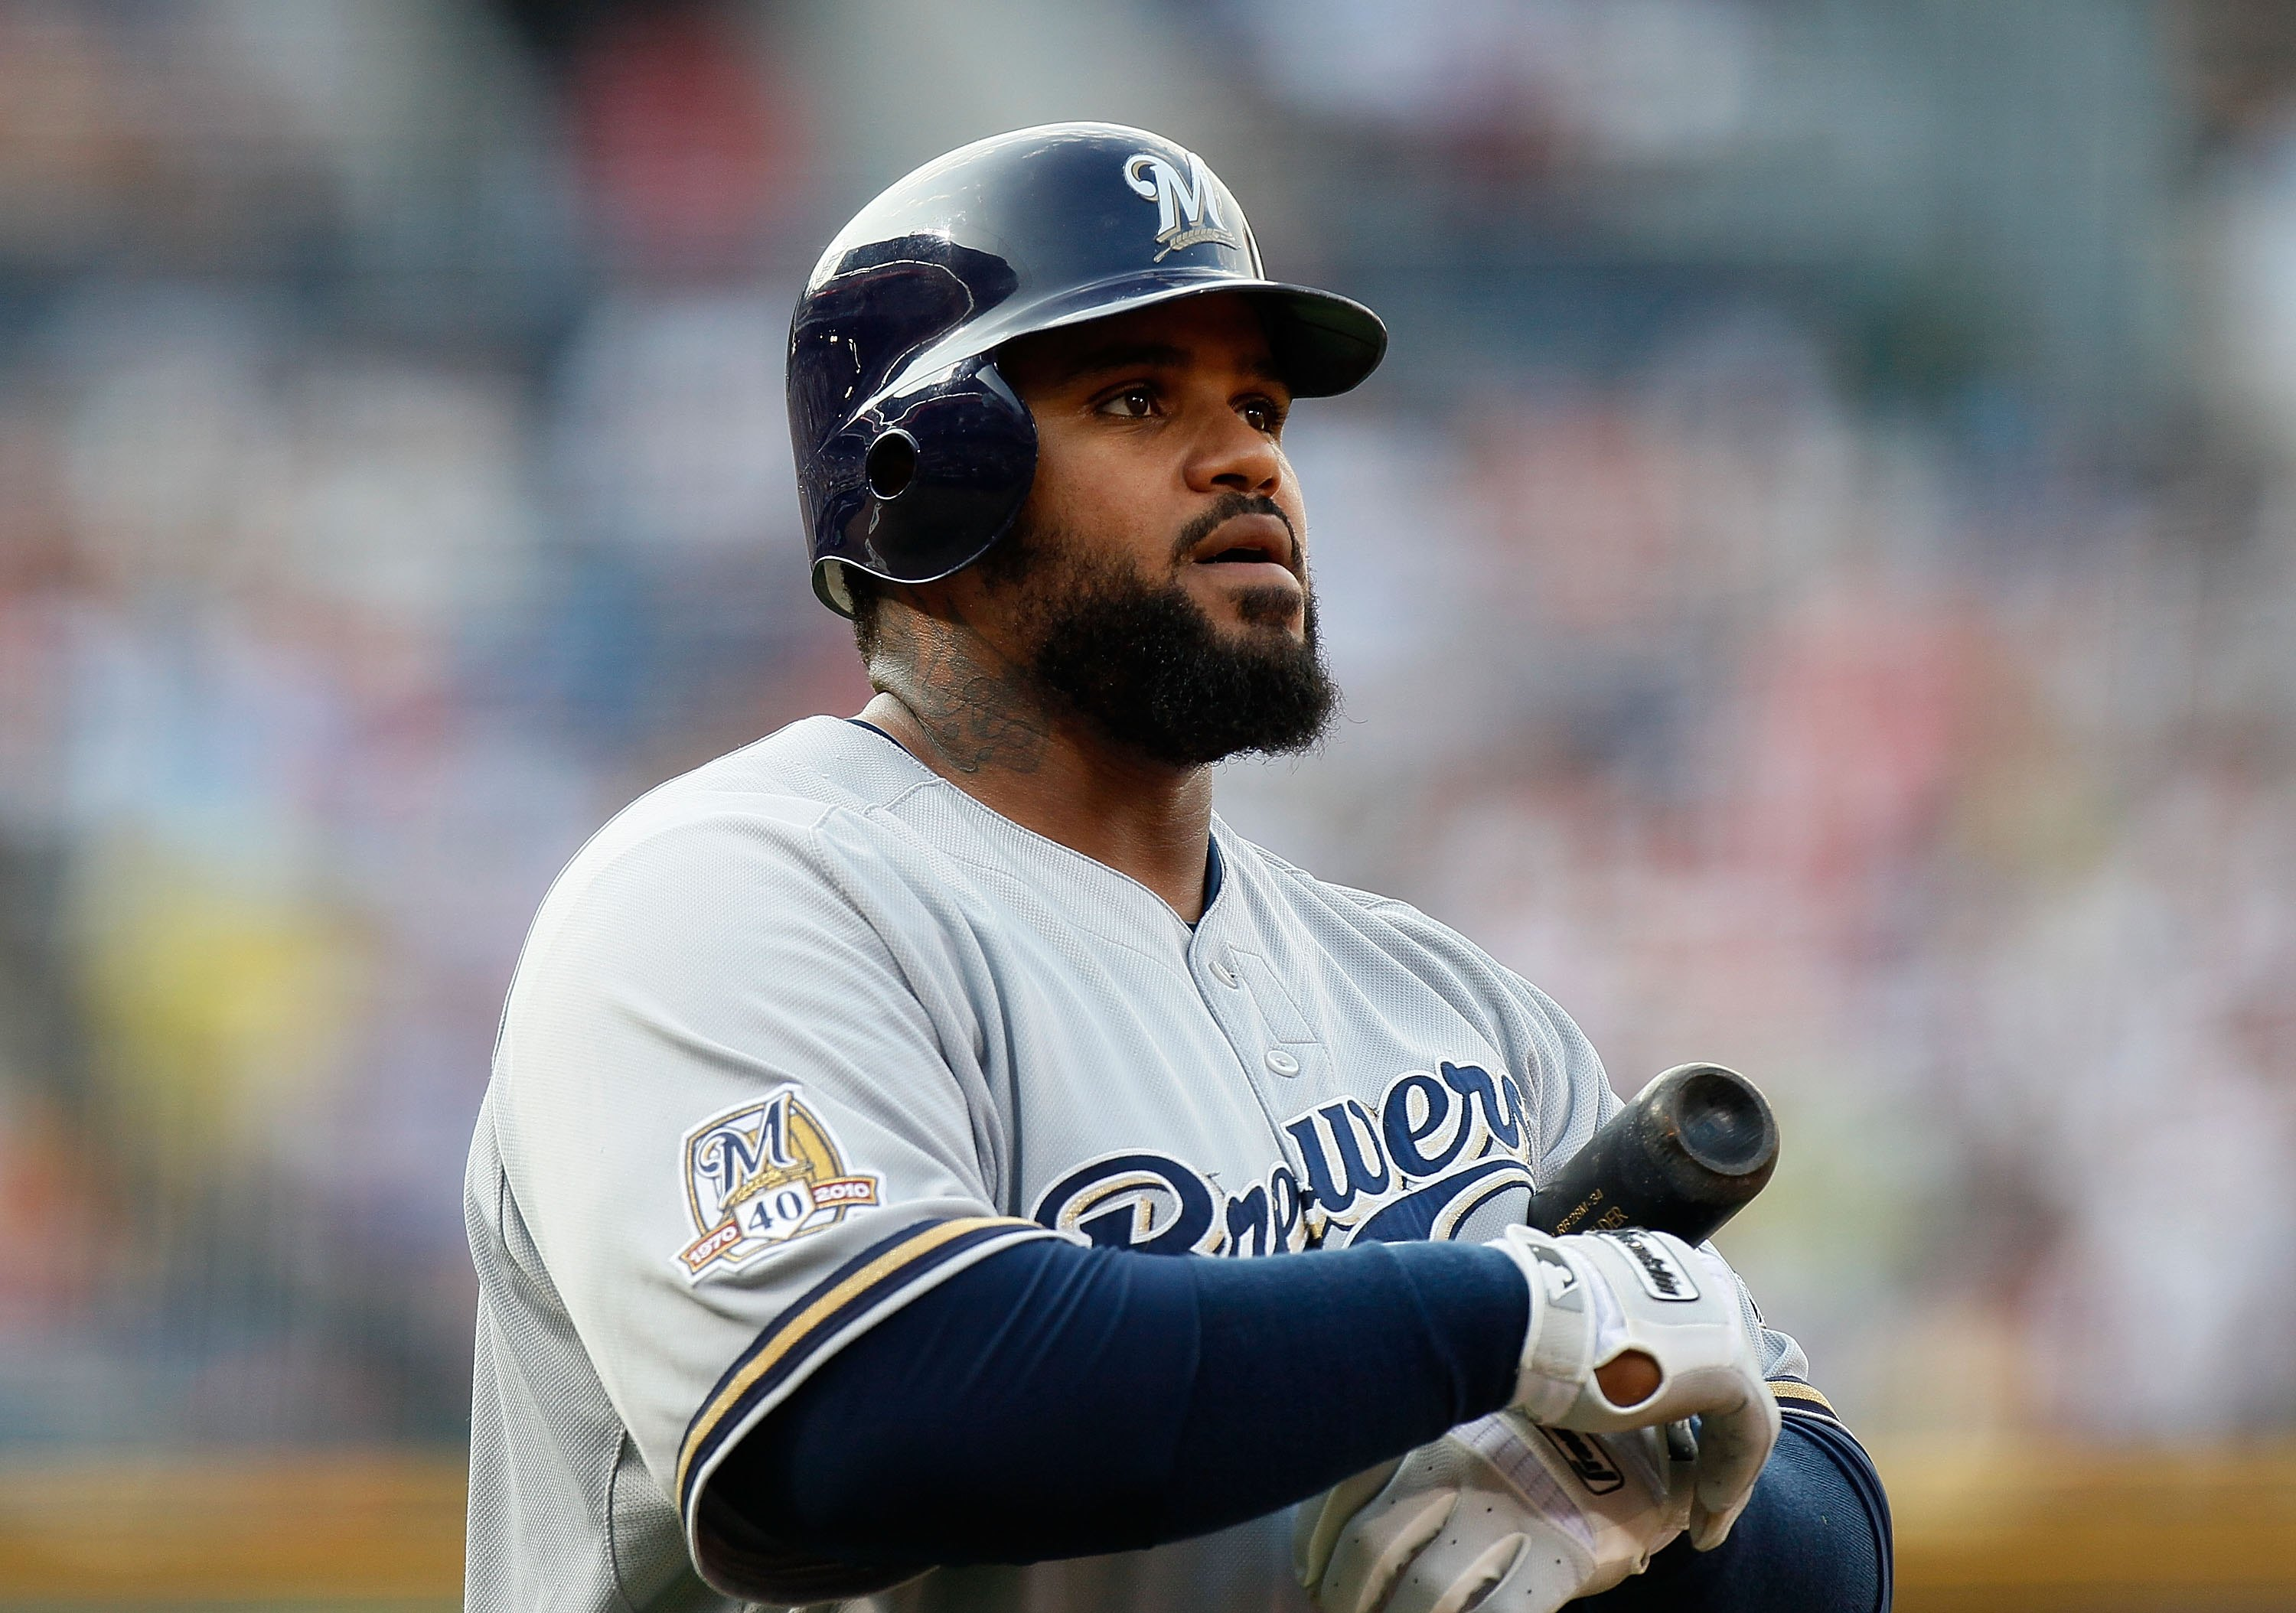 ATLANTA - JULY 15:  Prince Fielder #28 of the Milwaukee Brewers against the Atlanta Braves at Turner Field on July 15, 2010 in Atlanta, Georgia.  (Photo by Kevin C. Cox/Getty Images)